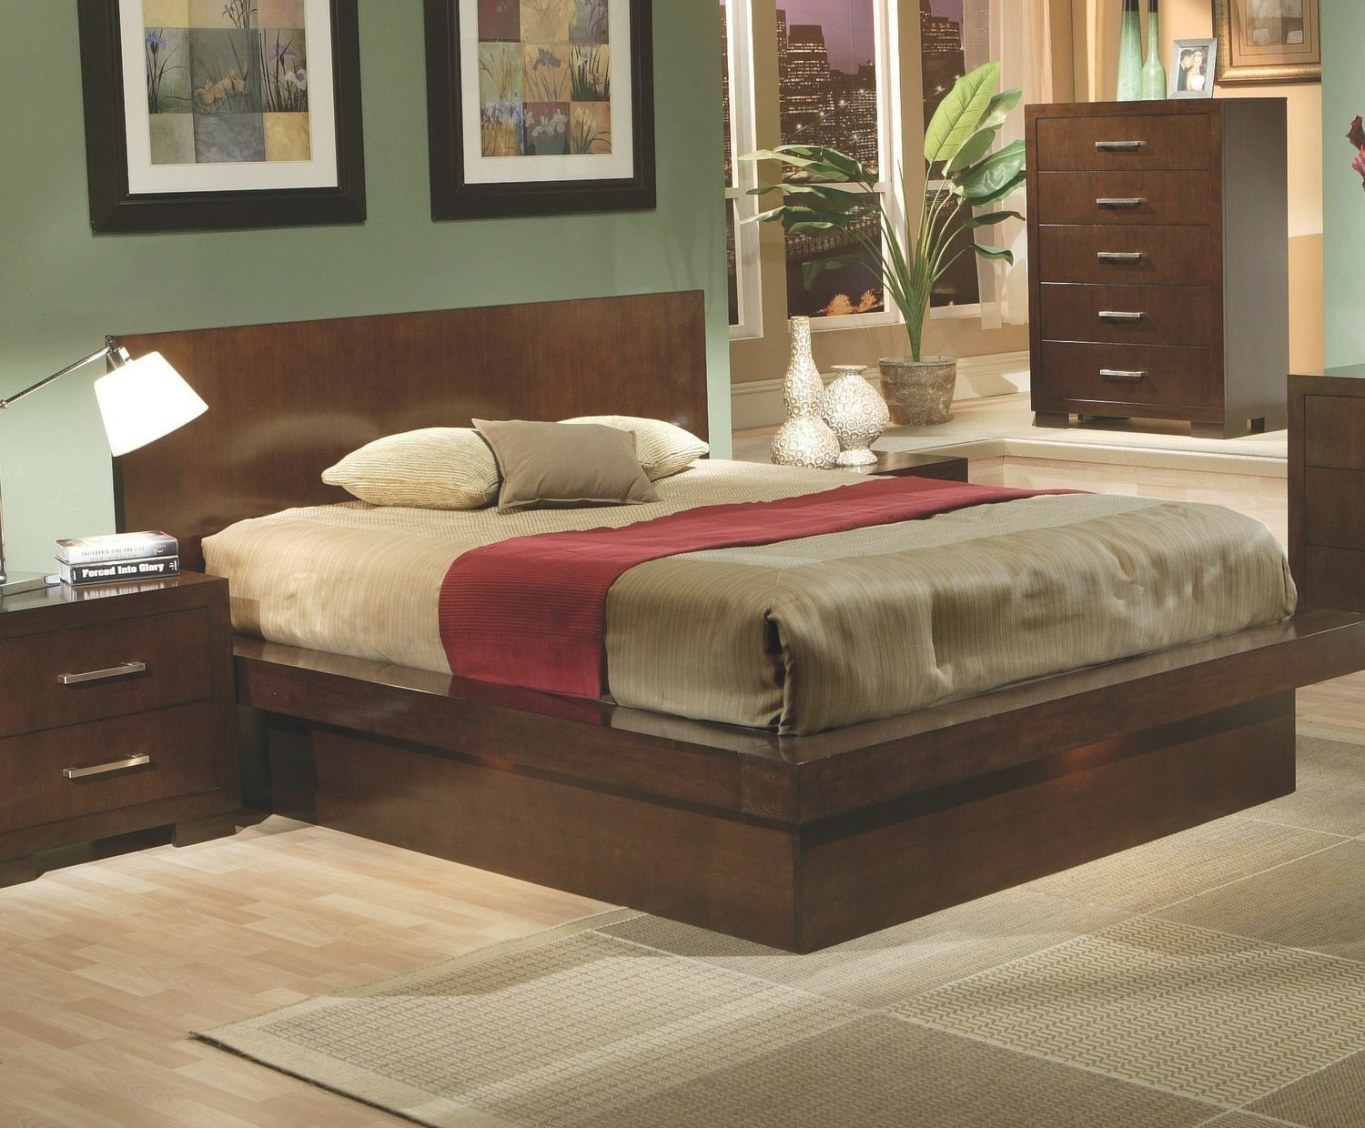 Jessica Regular King Size Platform Bed Lowest Price - Sofa intended for King Size Platform Bed